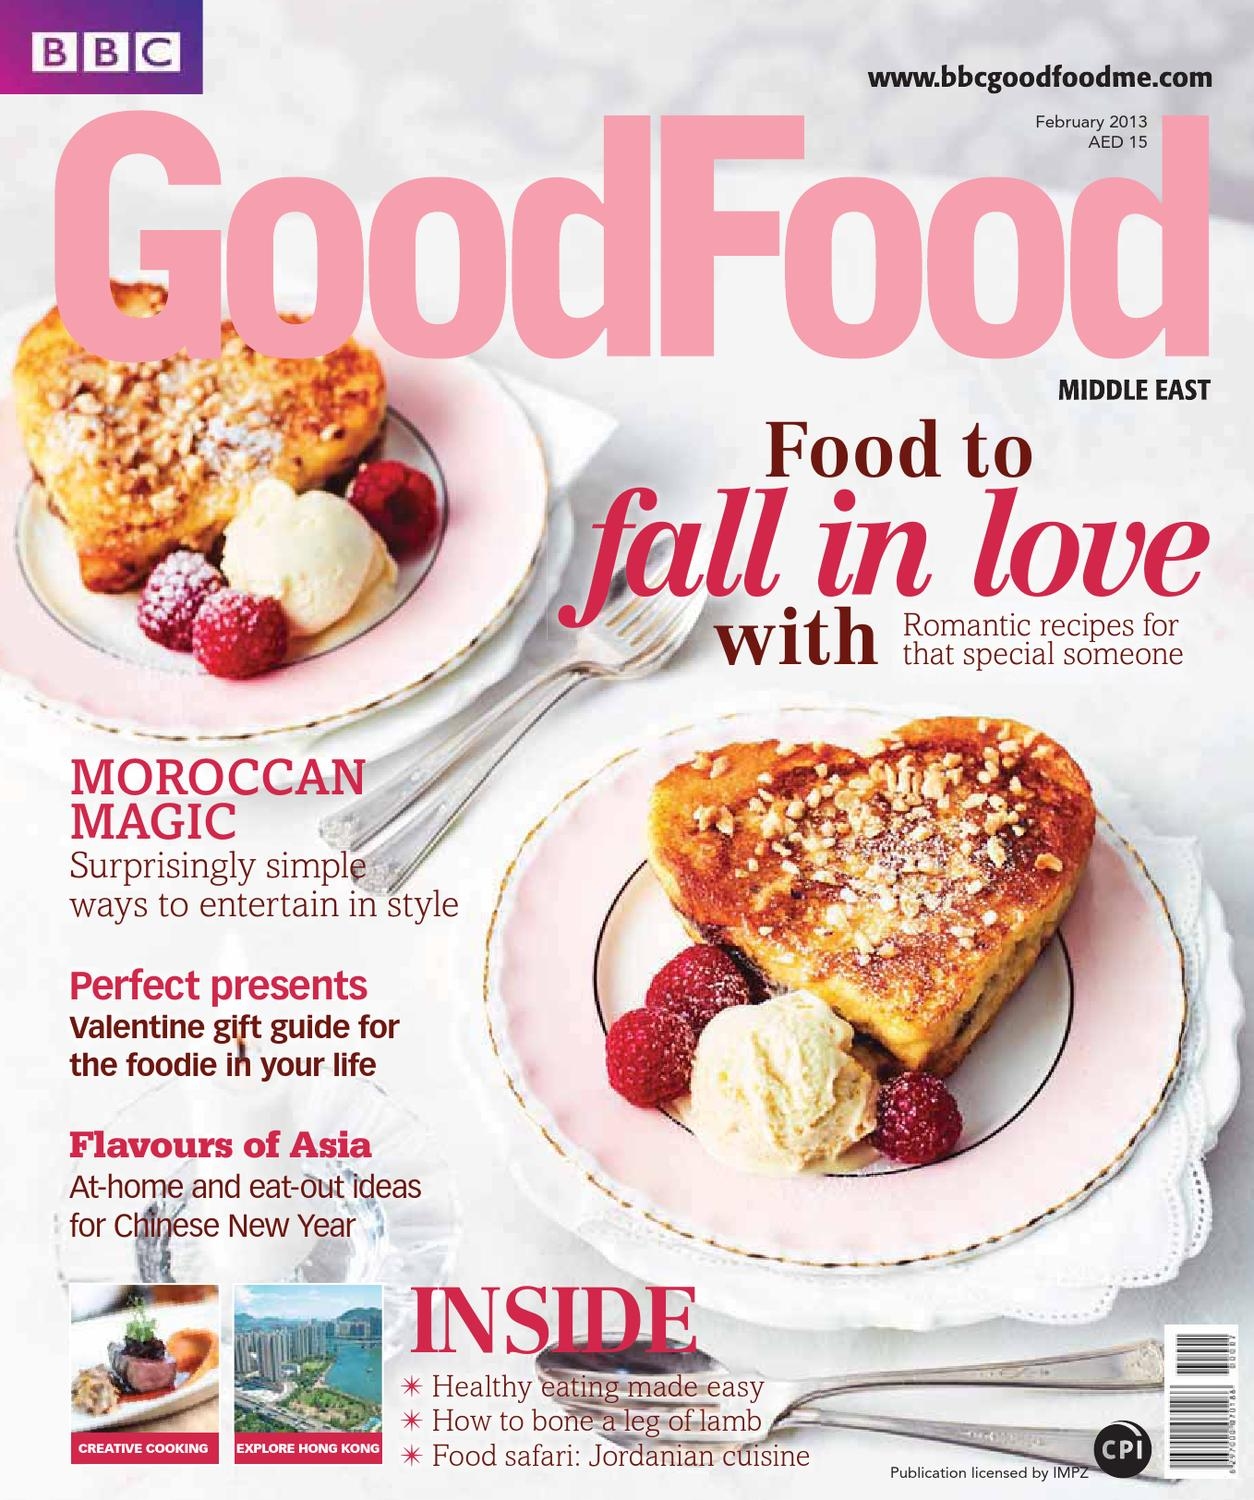 bbc good food middle east magazine february 2013 by bbc good food